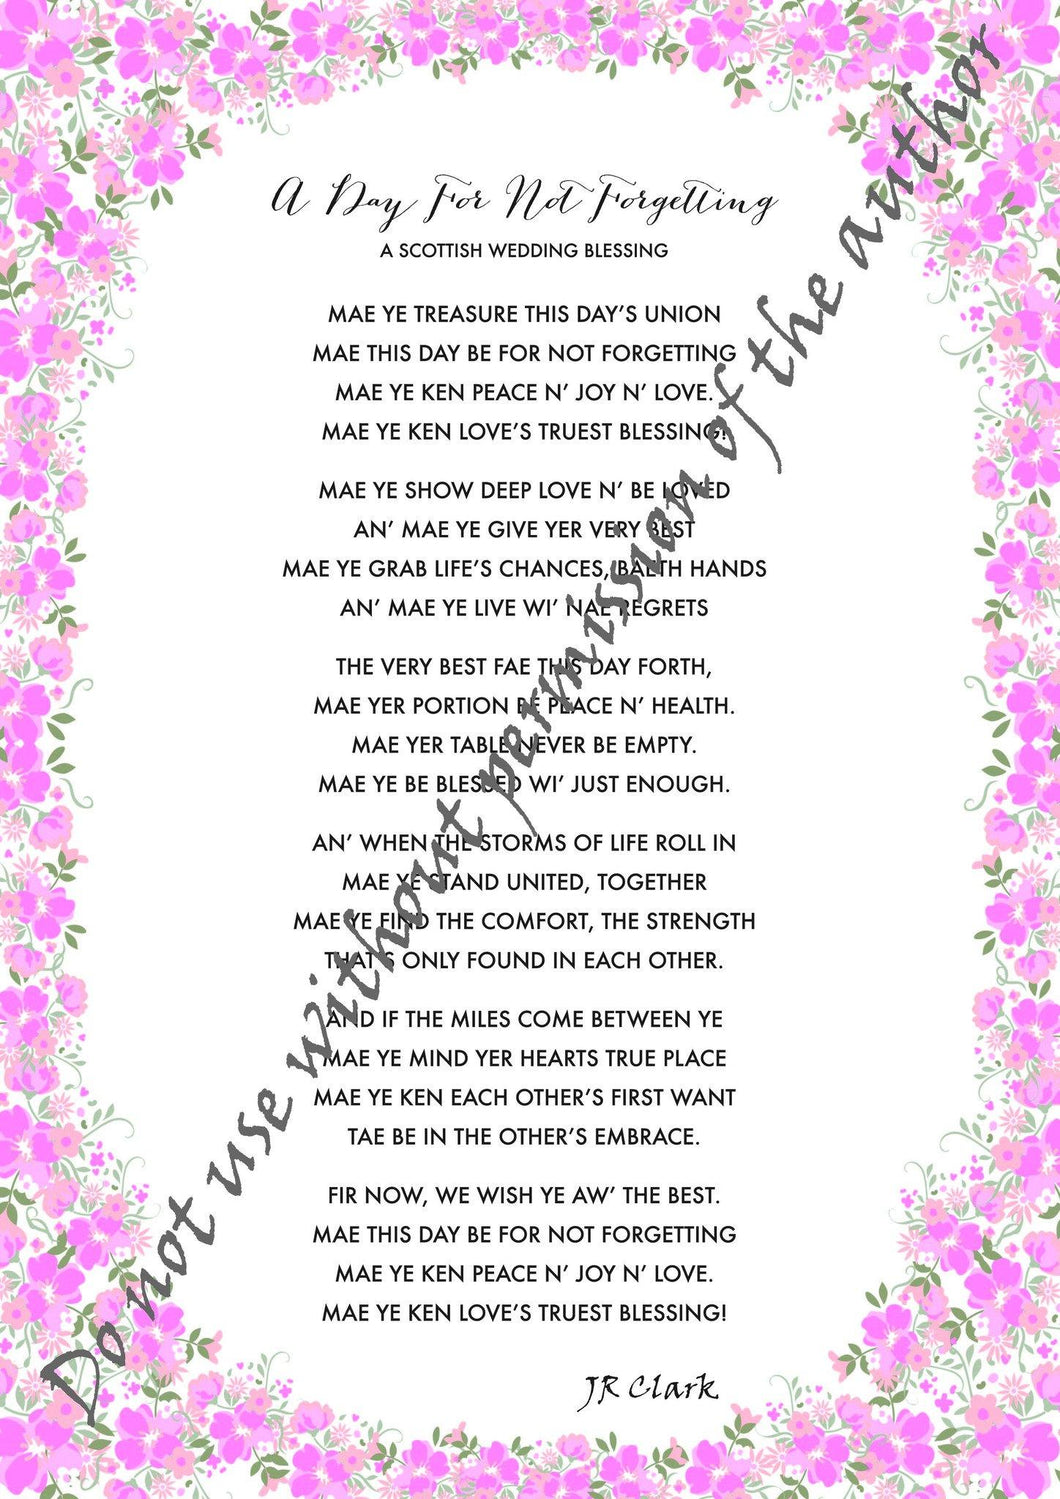 A Scottish Wedding Blessing Print